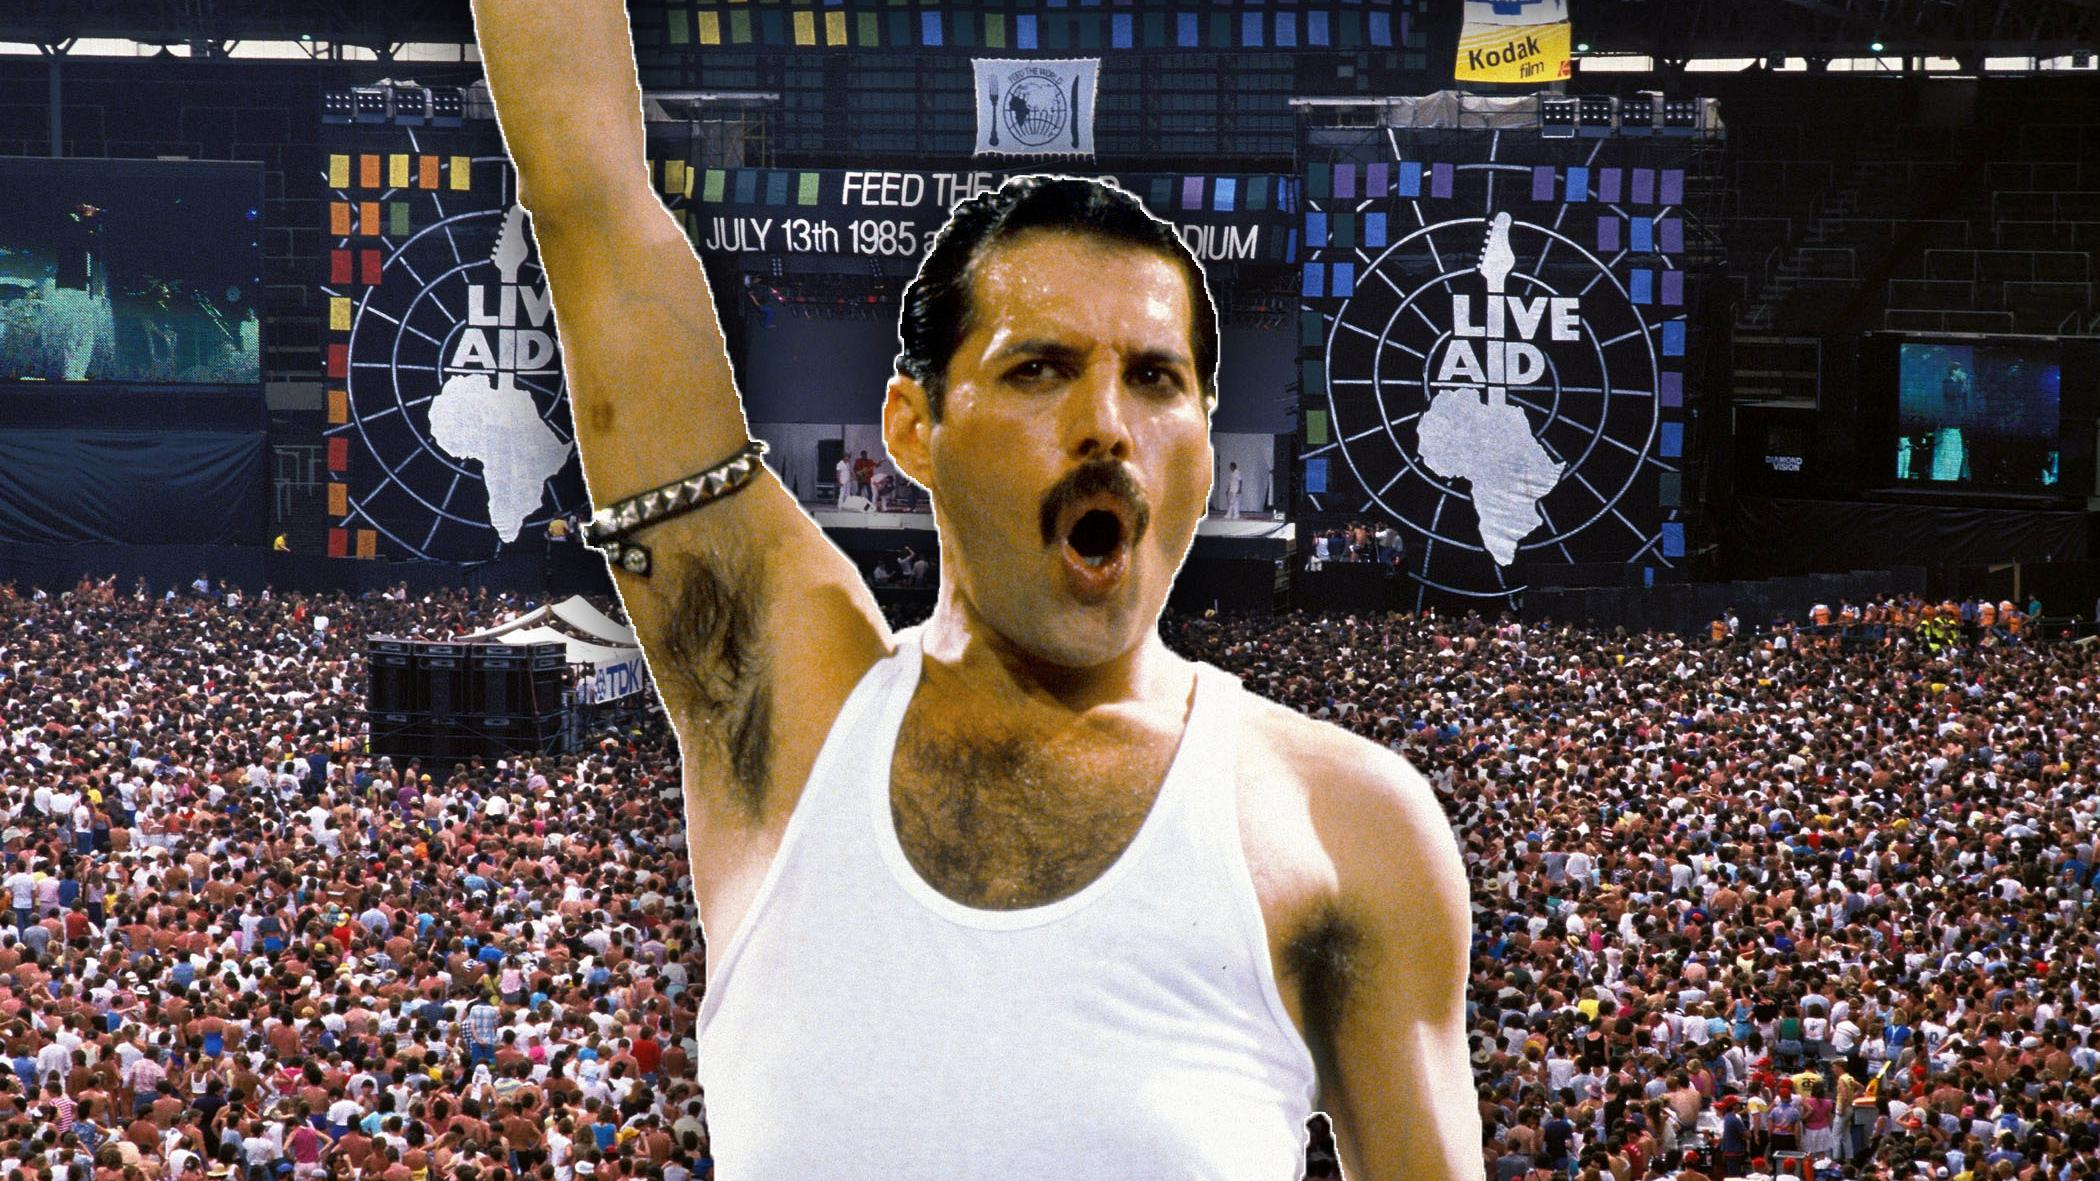 freddie mercury og Live Aid collage